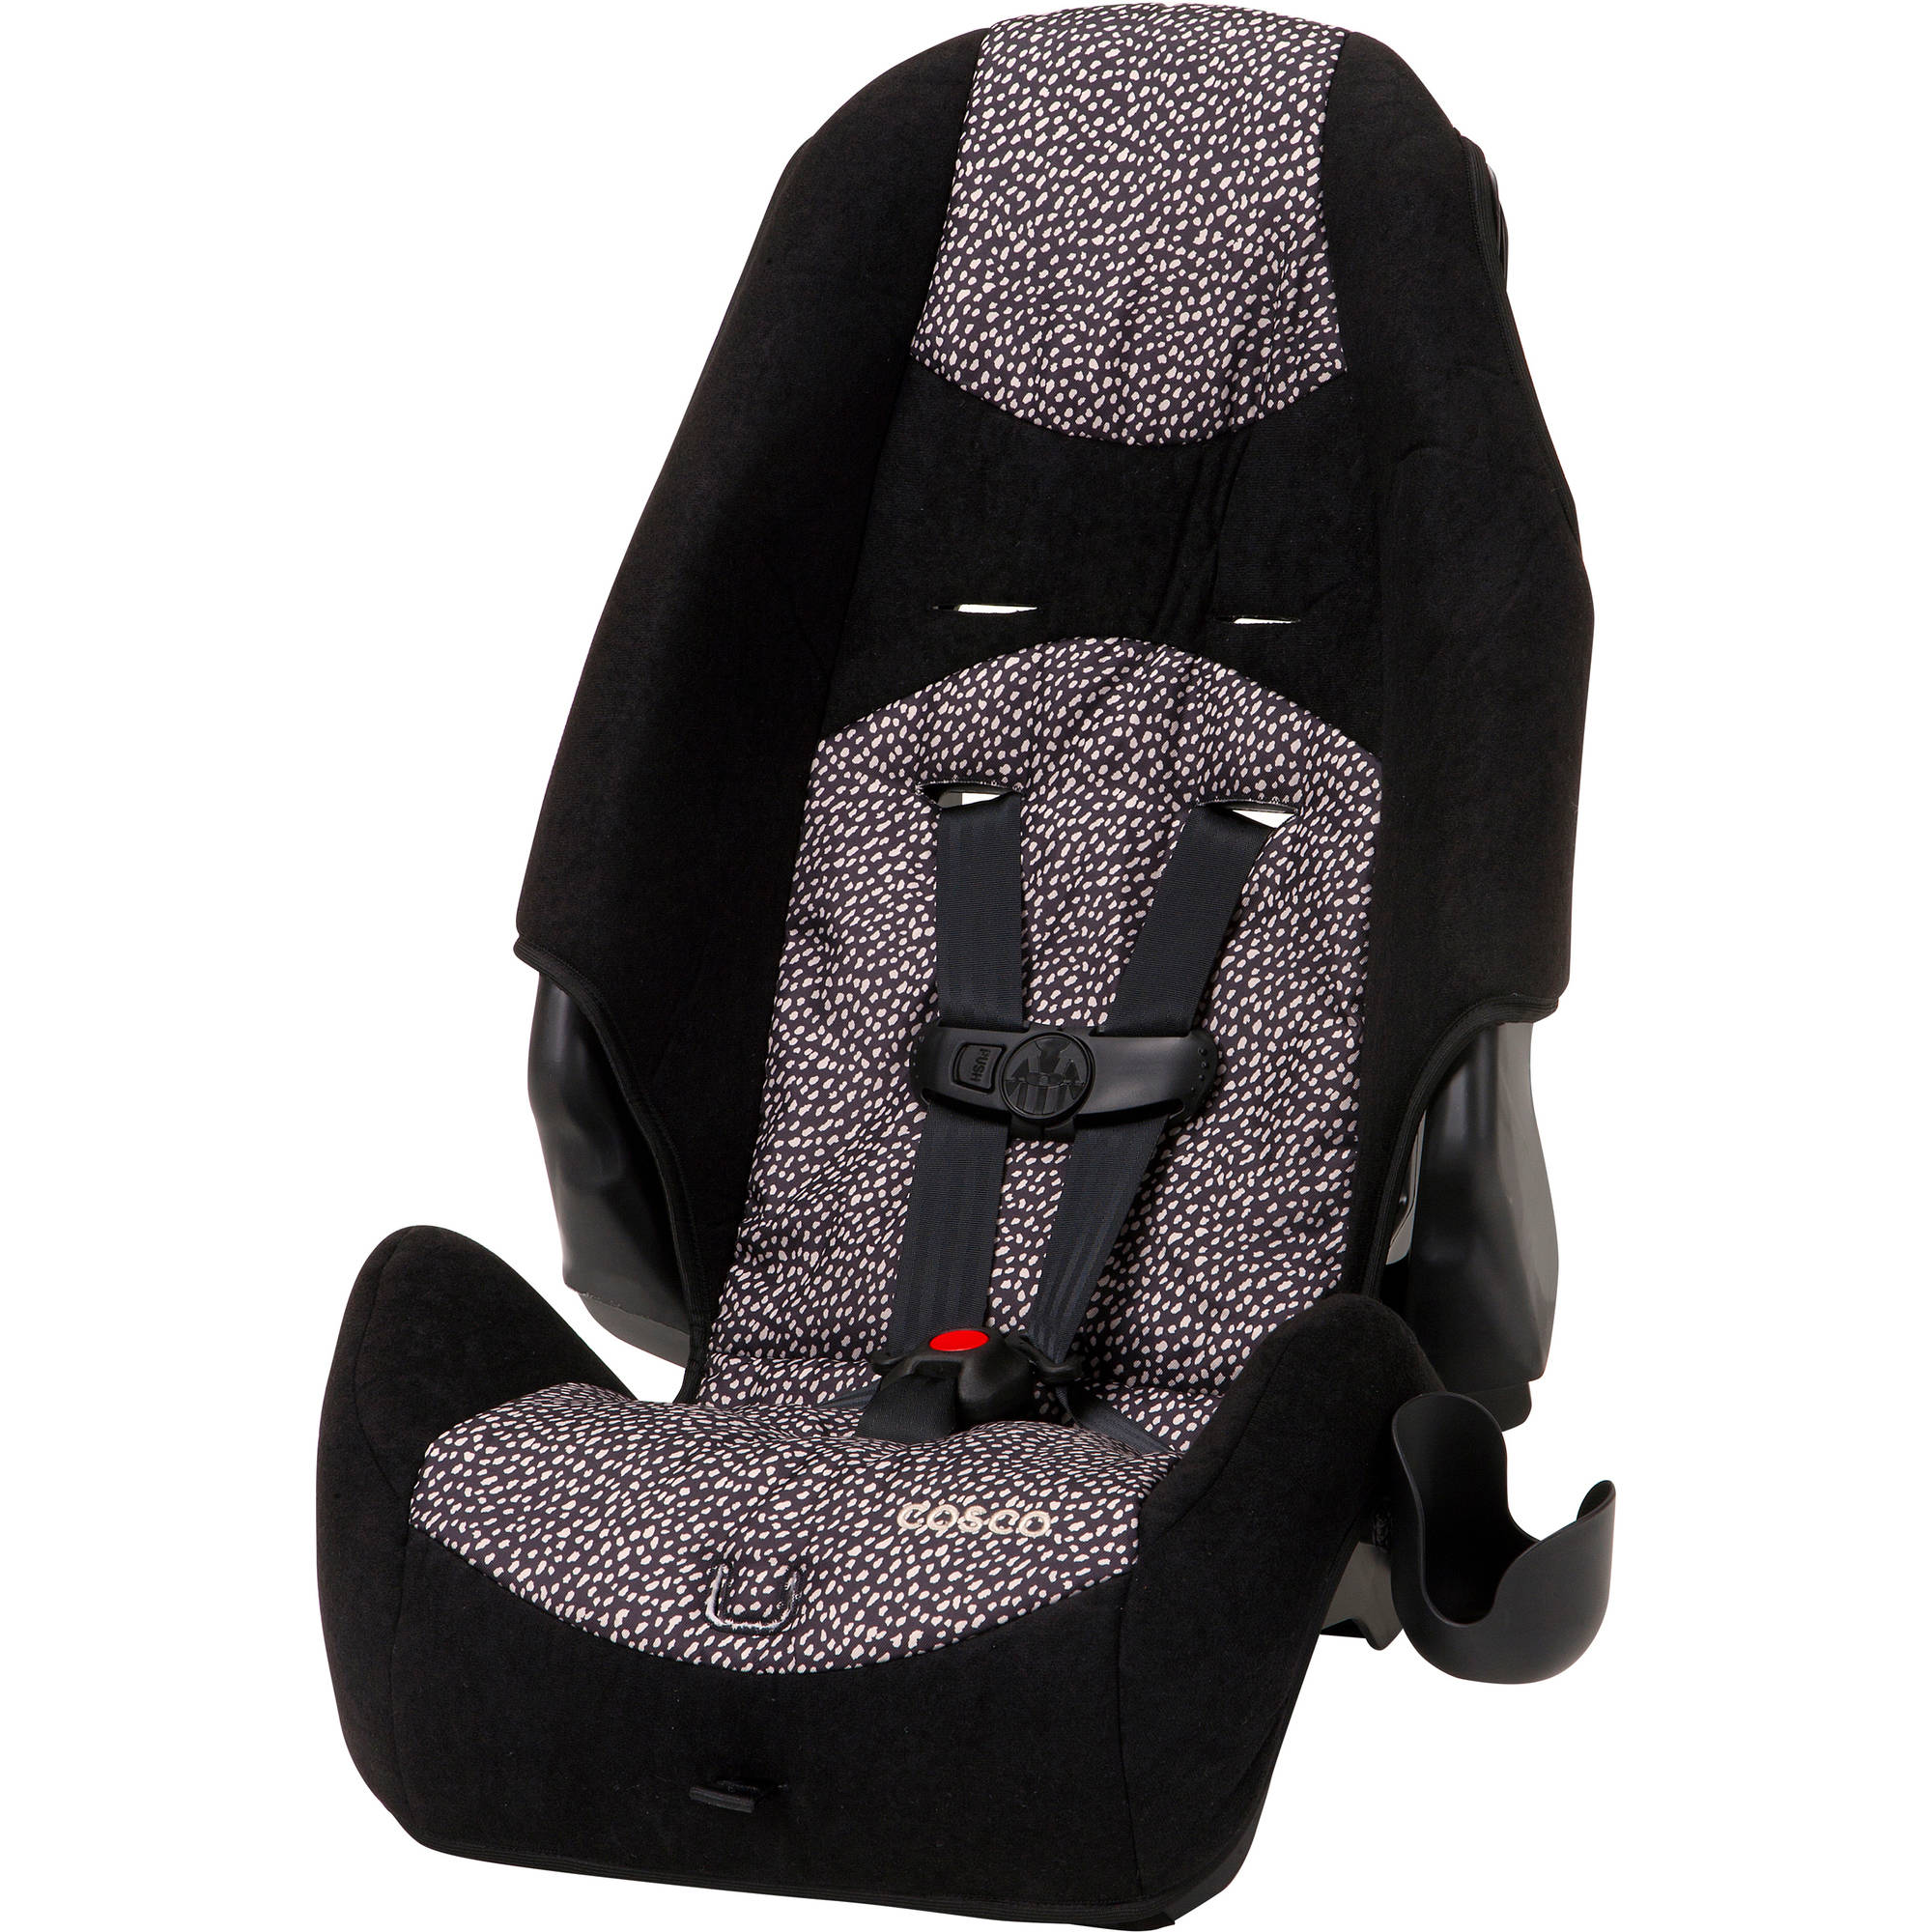 Cosco Highback 2-in-1 Booster Car Seat, Choose your Pattern